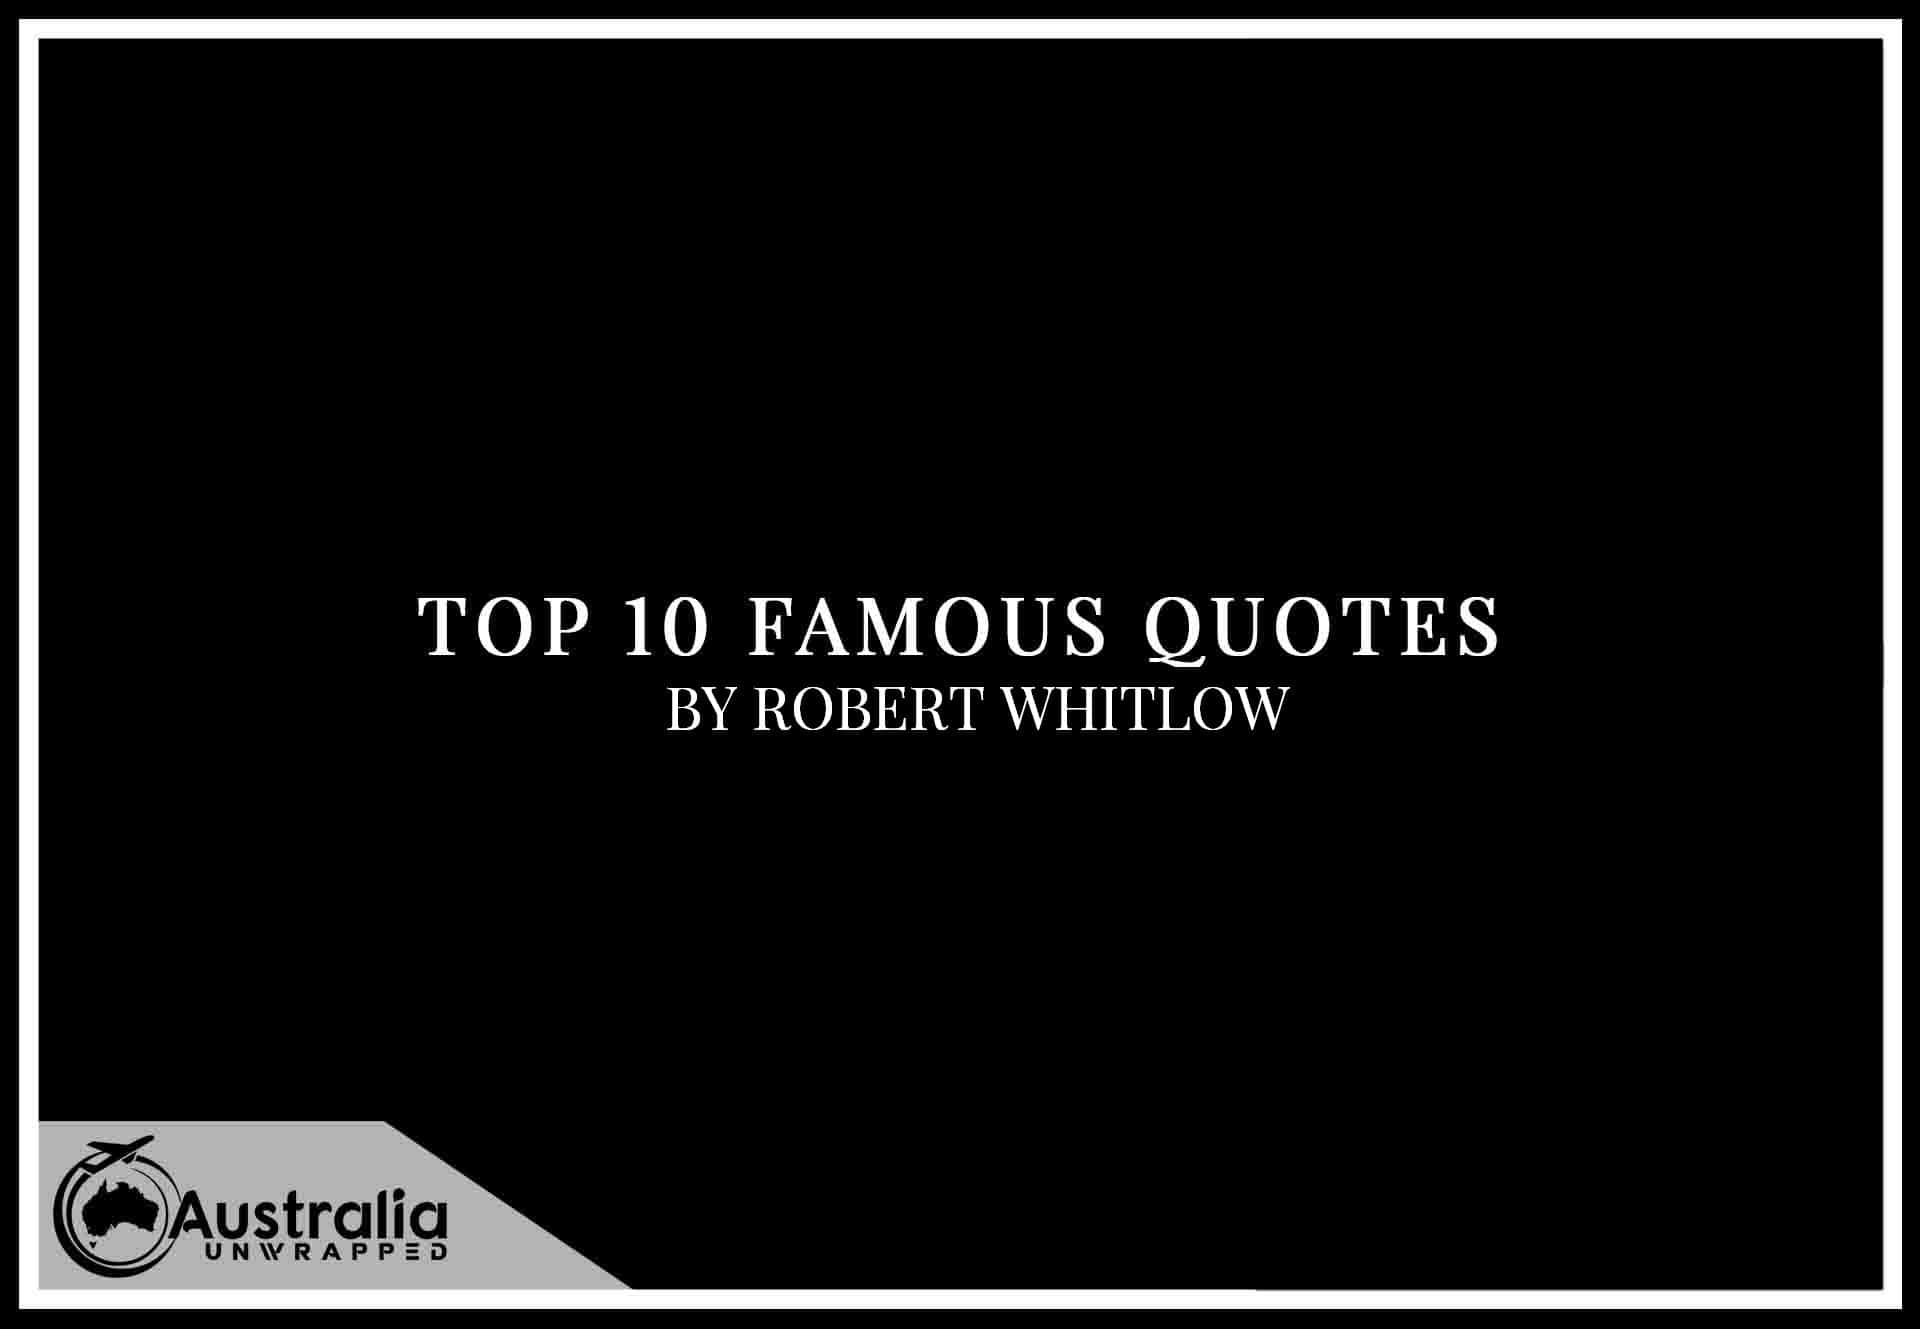 Top 10 Famous Quotes by Author Robert Whitlow